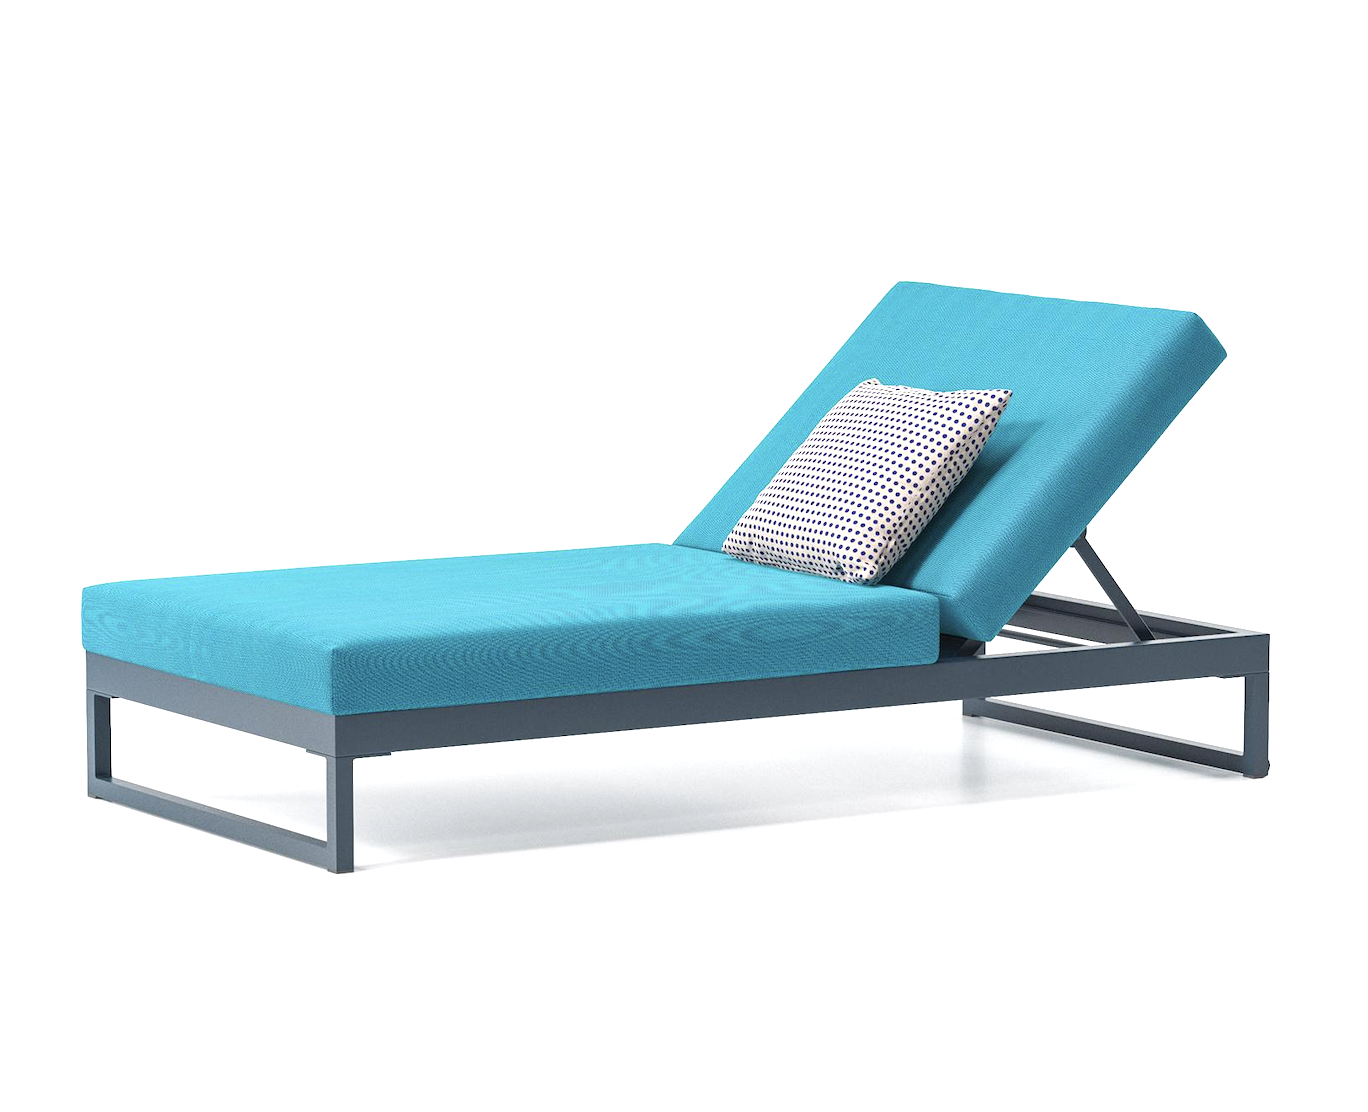 Product Image Landscape sunlounger with Legs